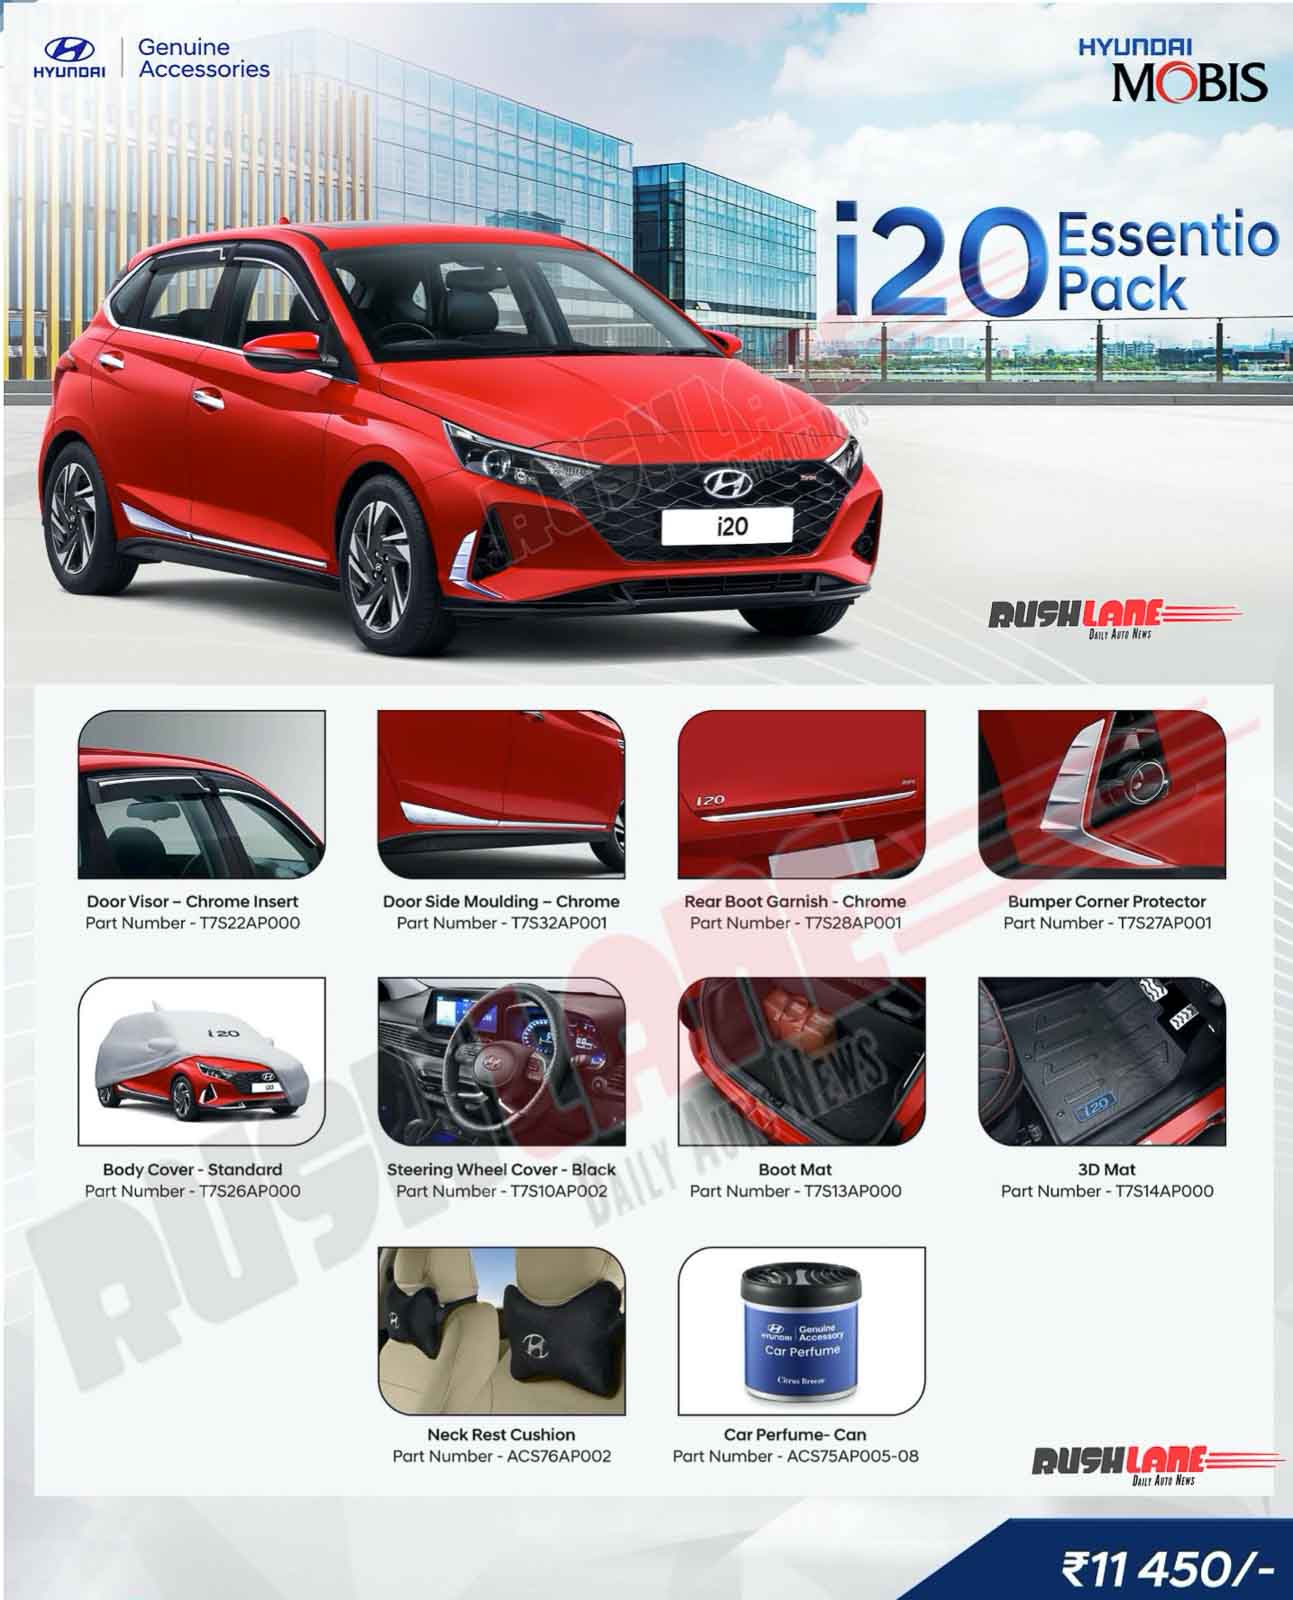 Hyundai i20 Essentio Accessory Pack